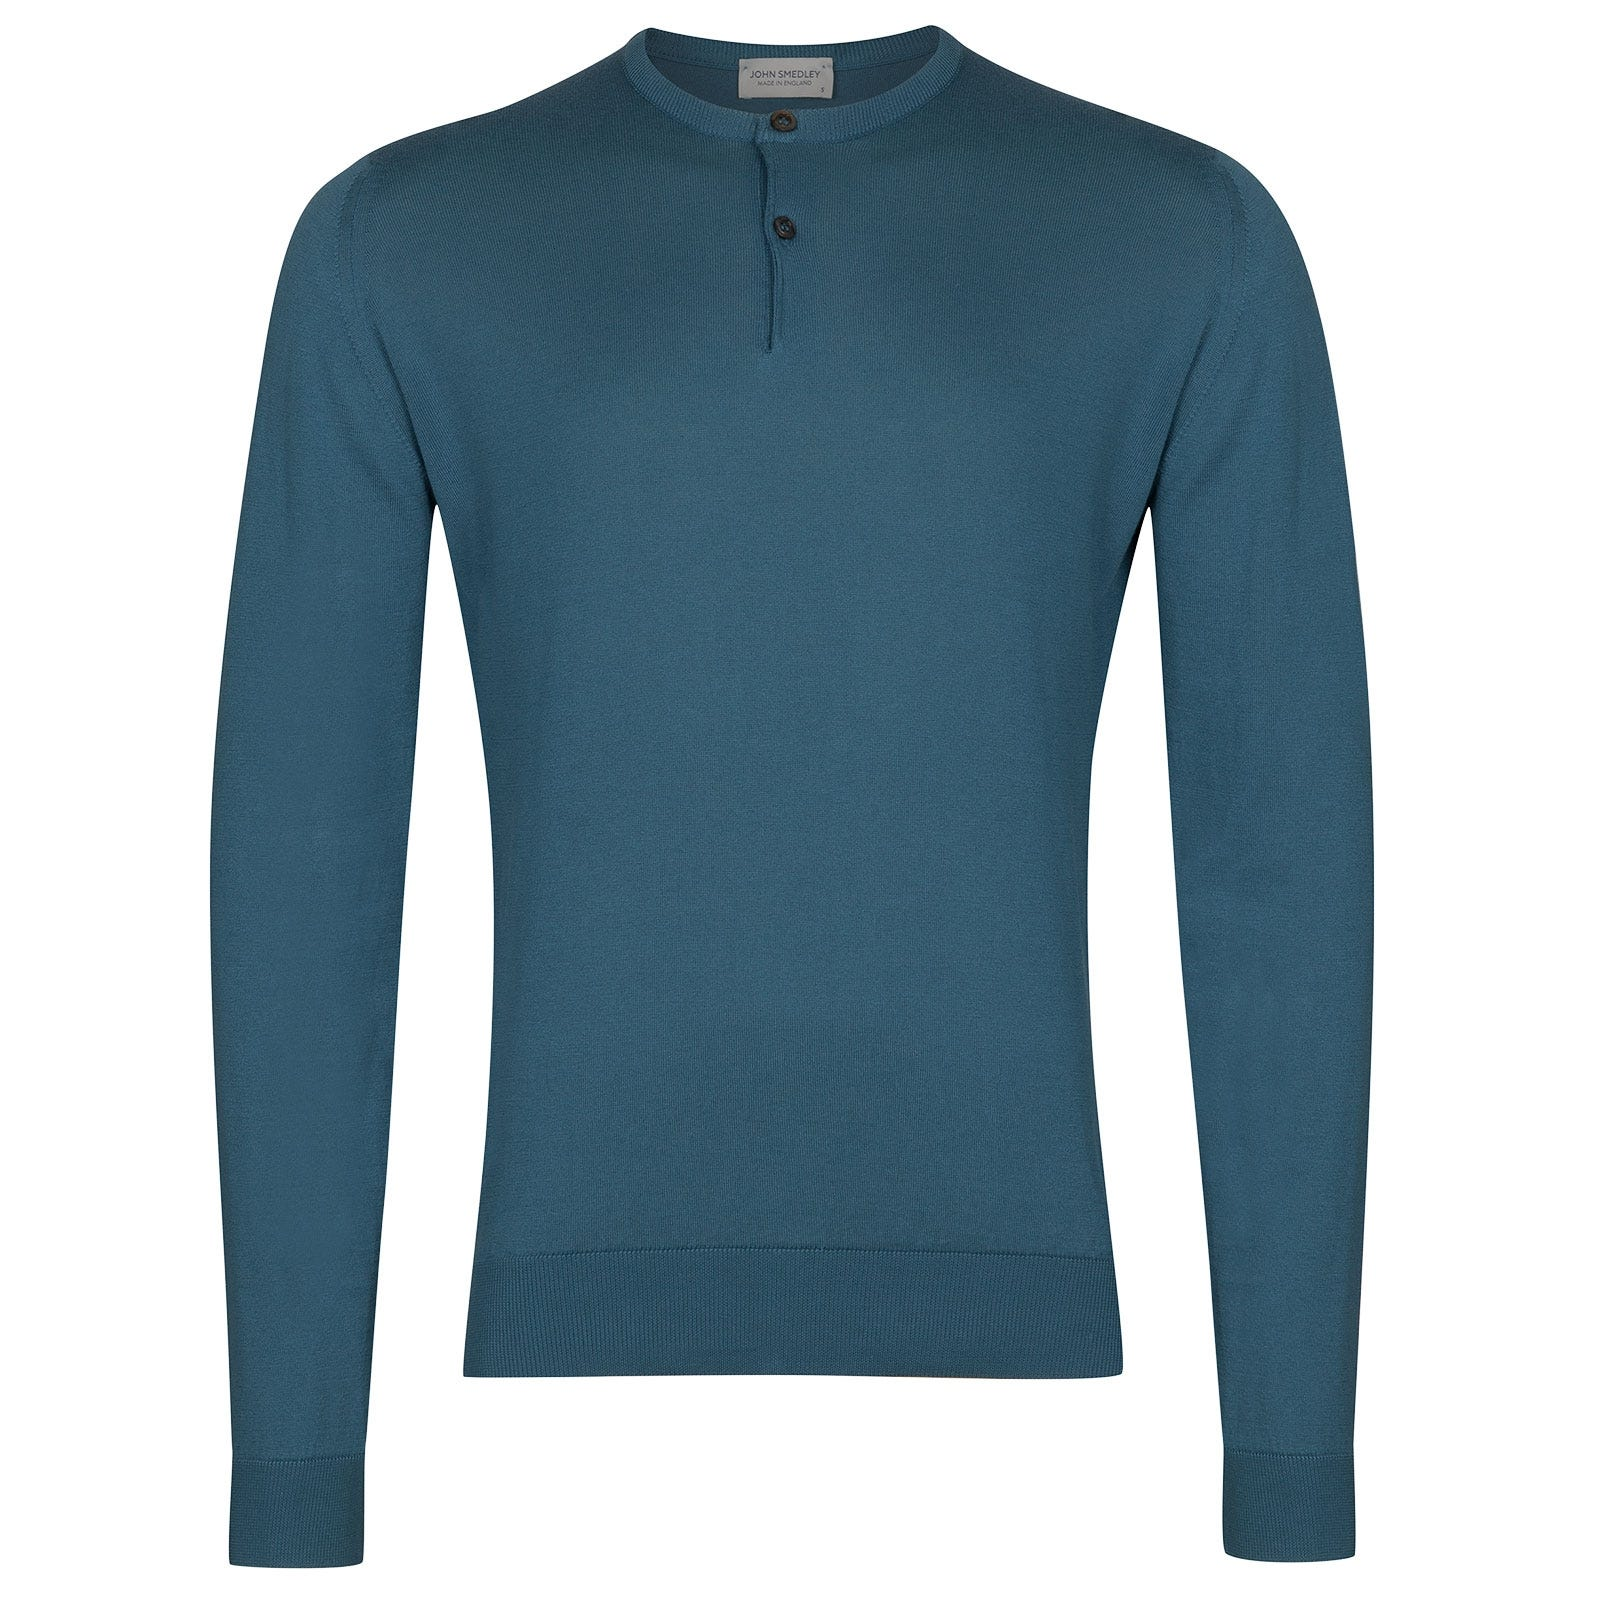 John Smedley Wembury Sea Island Cotton Pullover in Bias Blue-XL